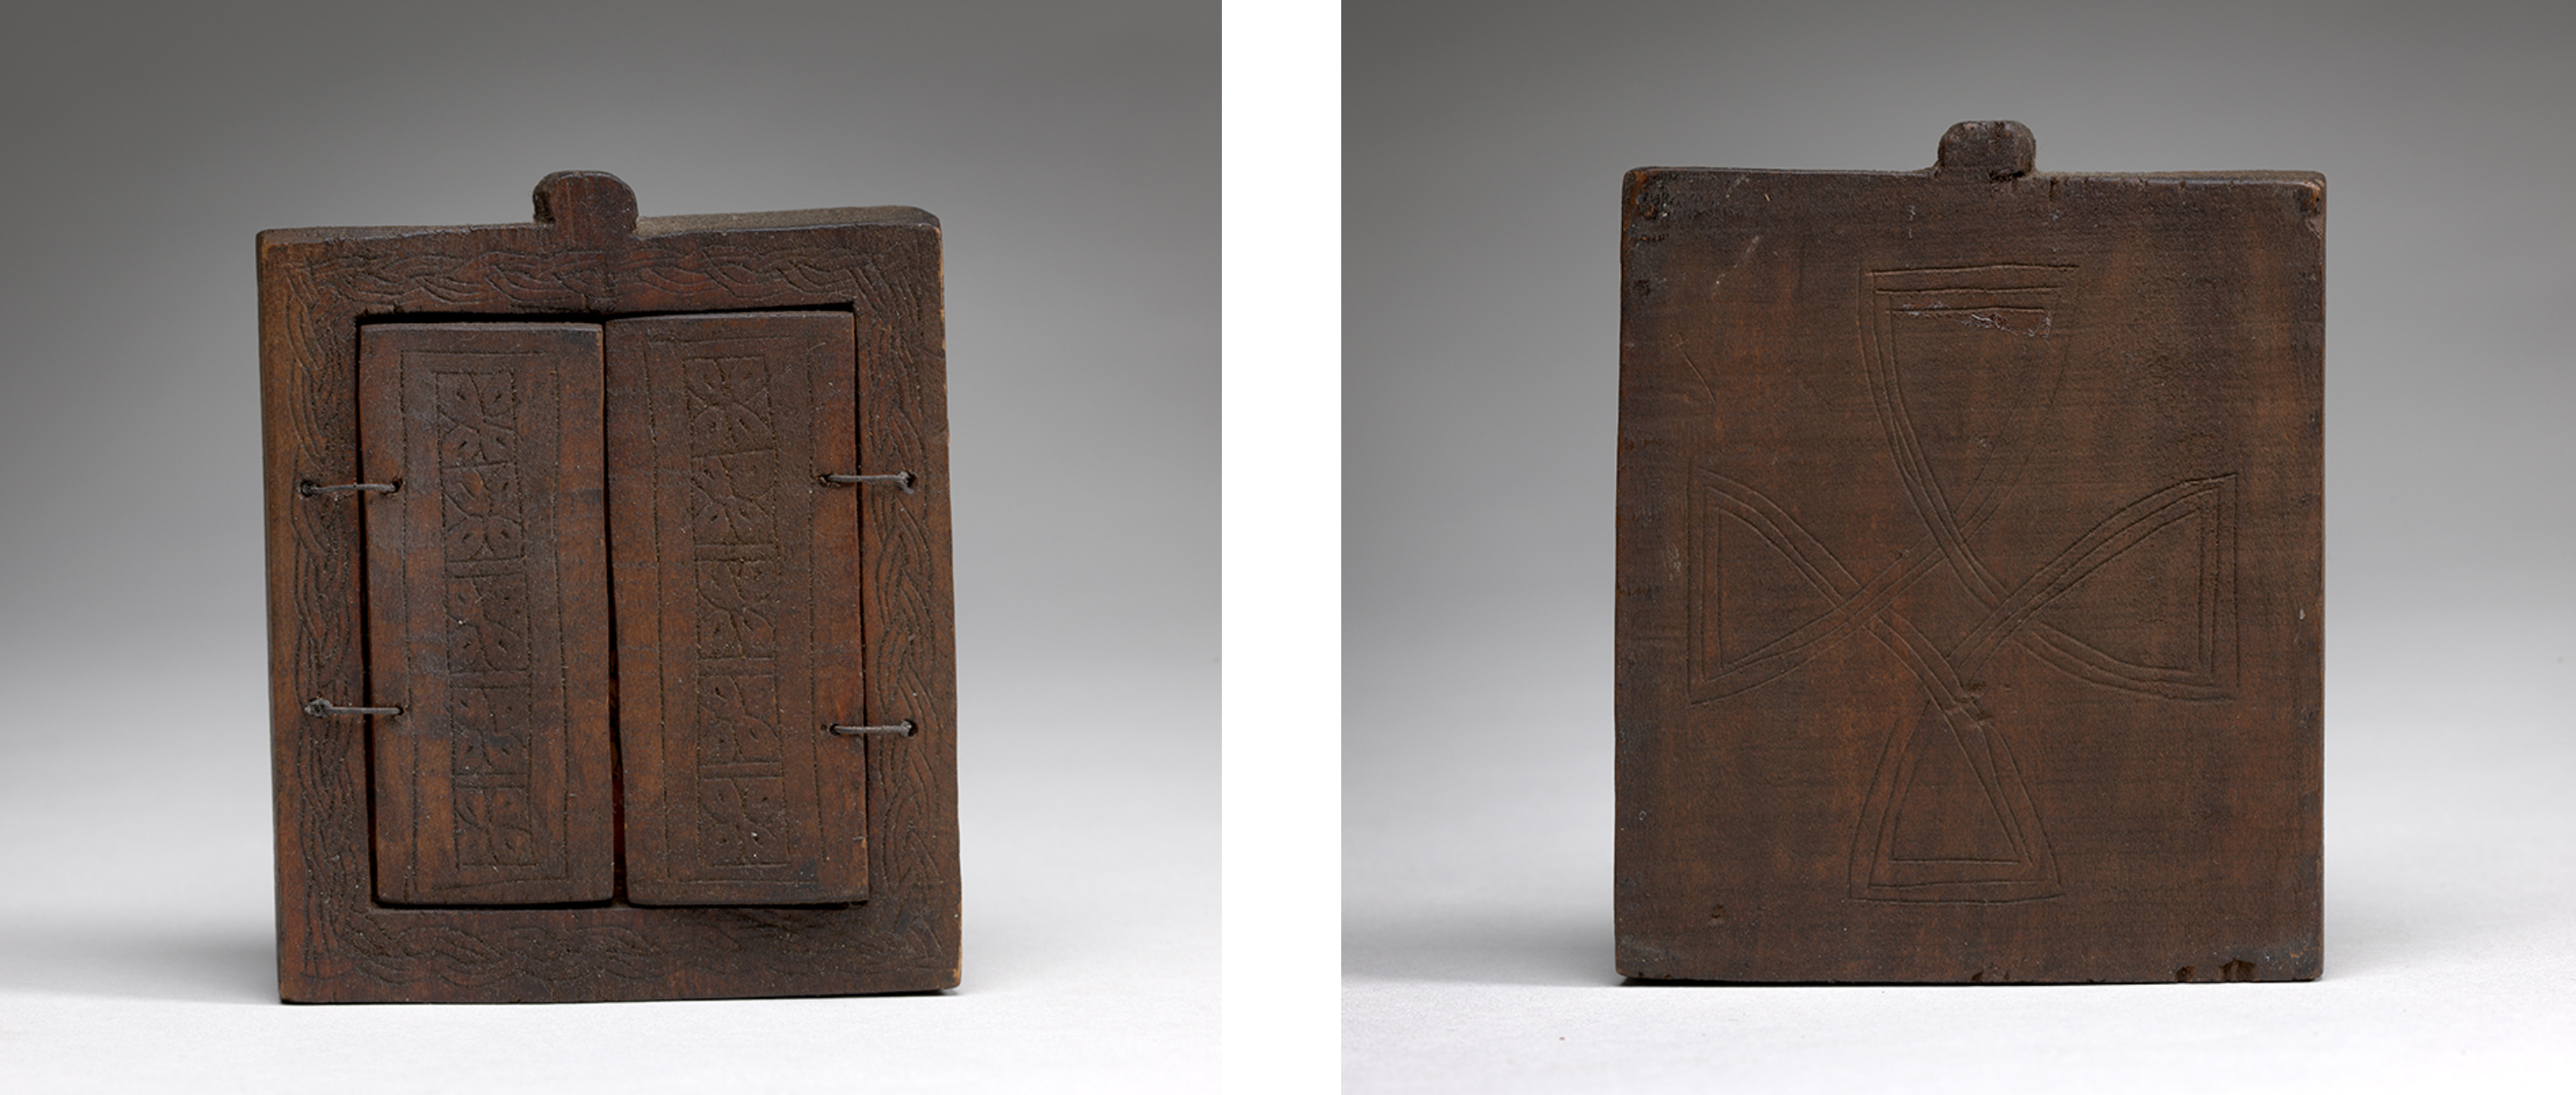 Images of the dark wood triptych closed from the front and back. Closed front view: two twine hinges join the outside seam of either side panel and the frame of the center triptych. Each center panel is carved with a mosaic design and the outer frame of the center panel is carved with a braid pattern. A small knob-shaped protuberance crowns the center of the triptych. Back view: a cross is carved into the dark wood back of the center panel. The wooden knob-shape is also visible.